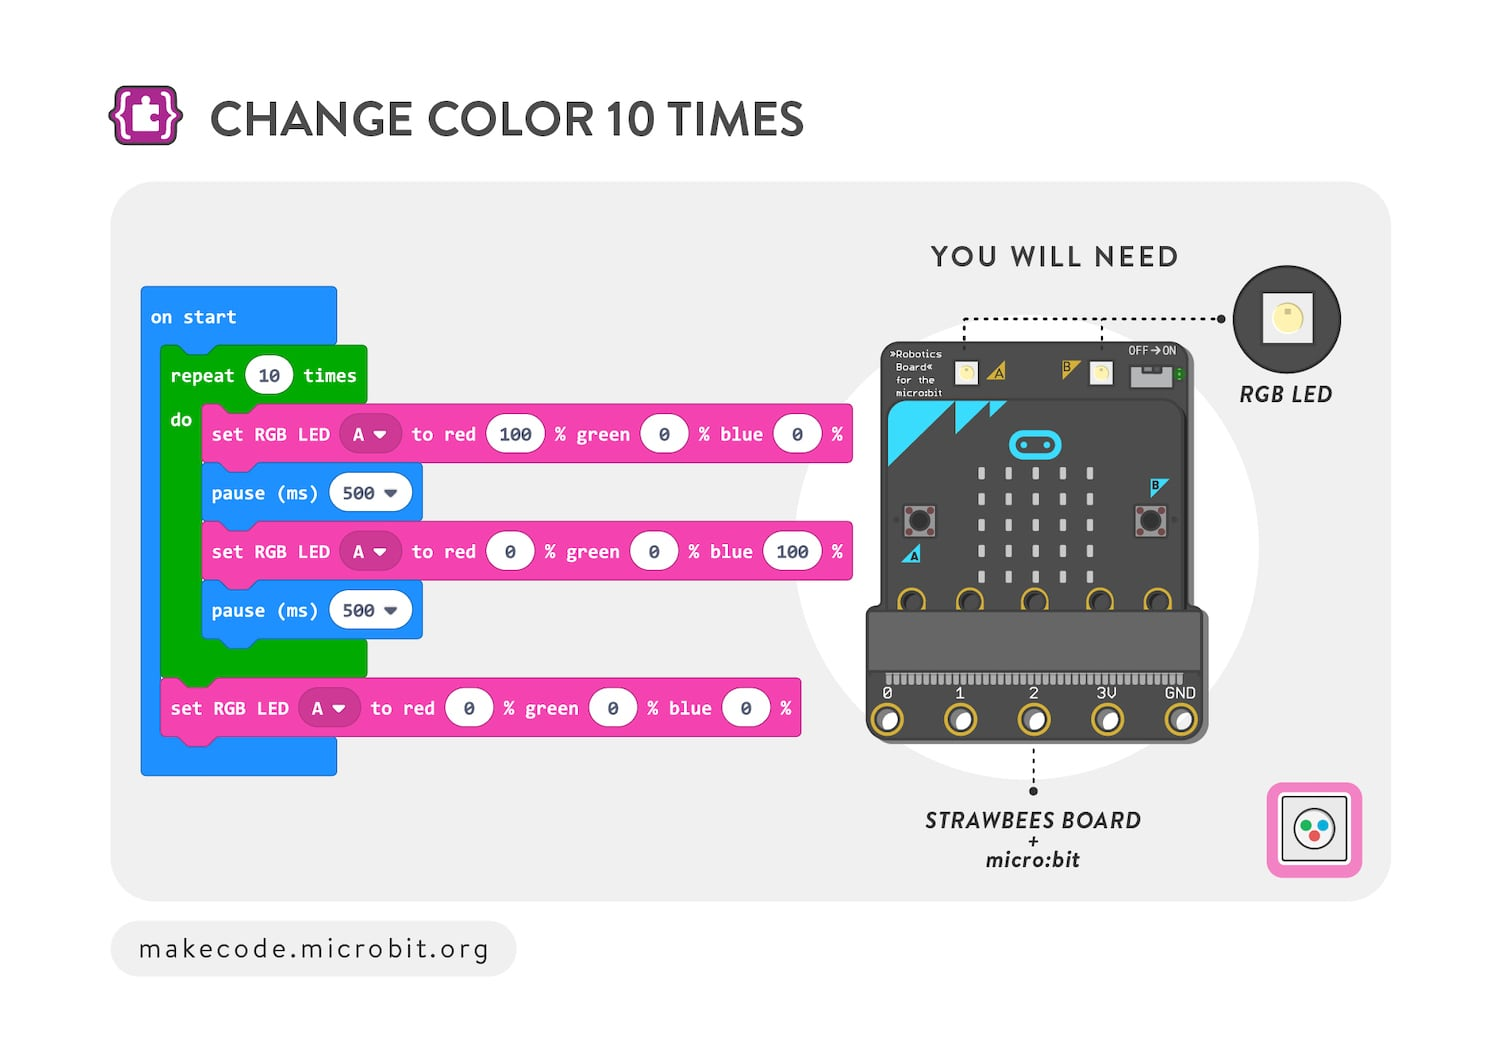 Change color 10 times